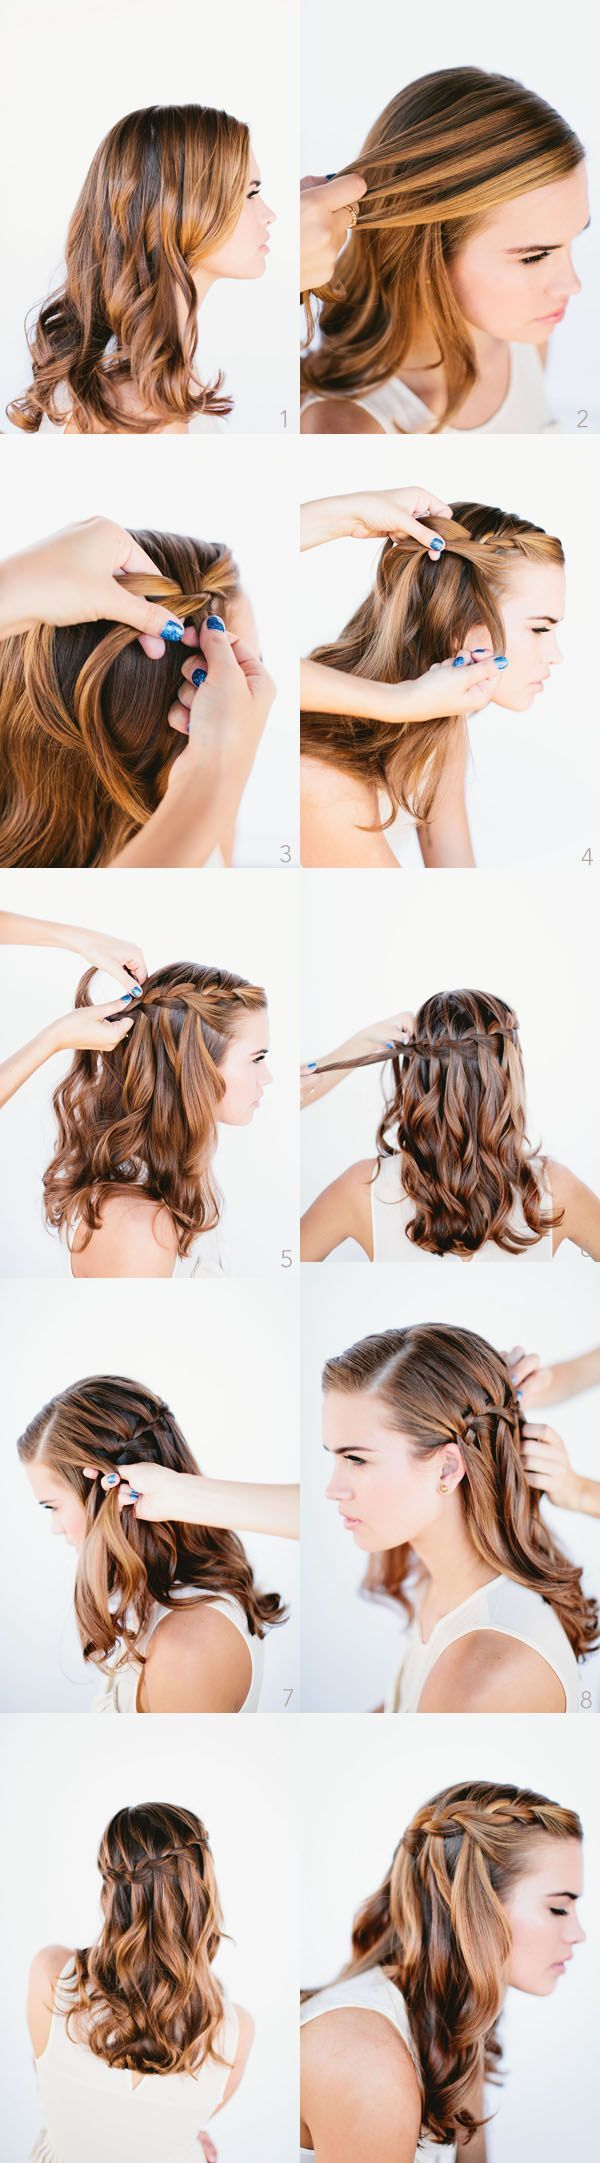 Hairstyles for Long Hair Step by Step